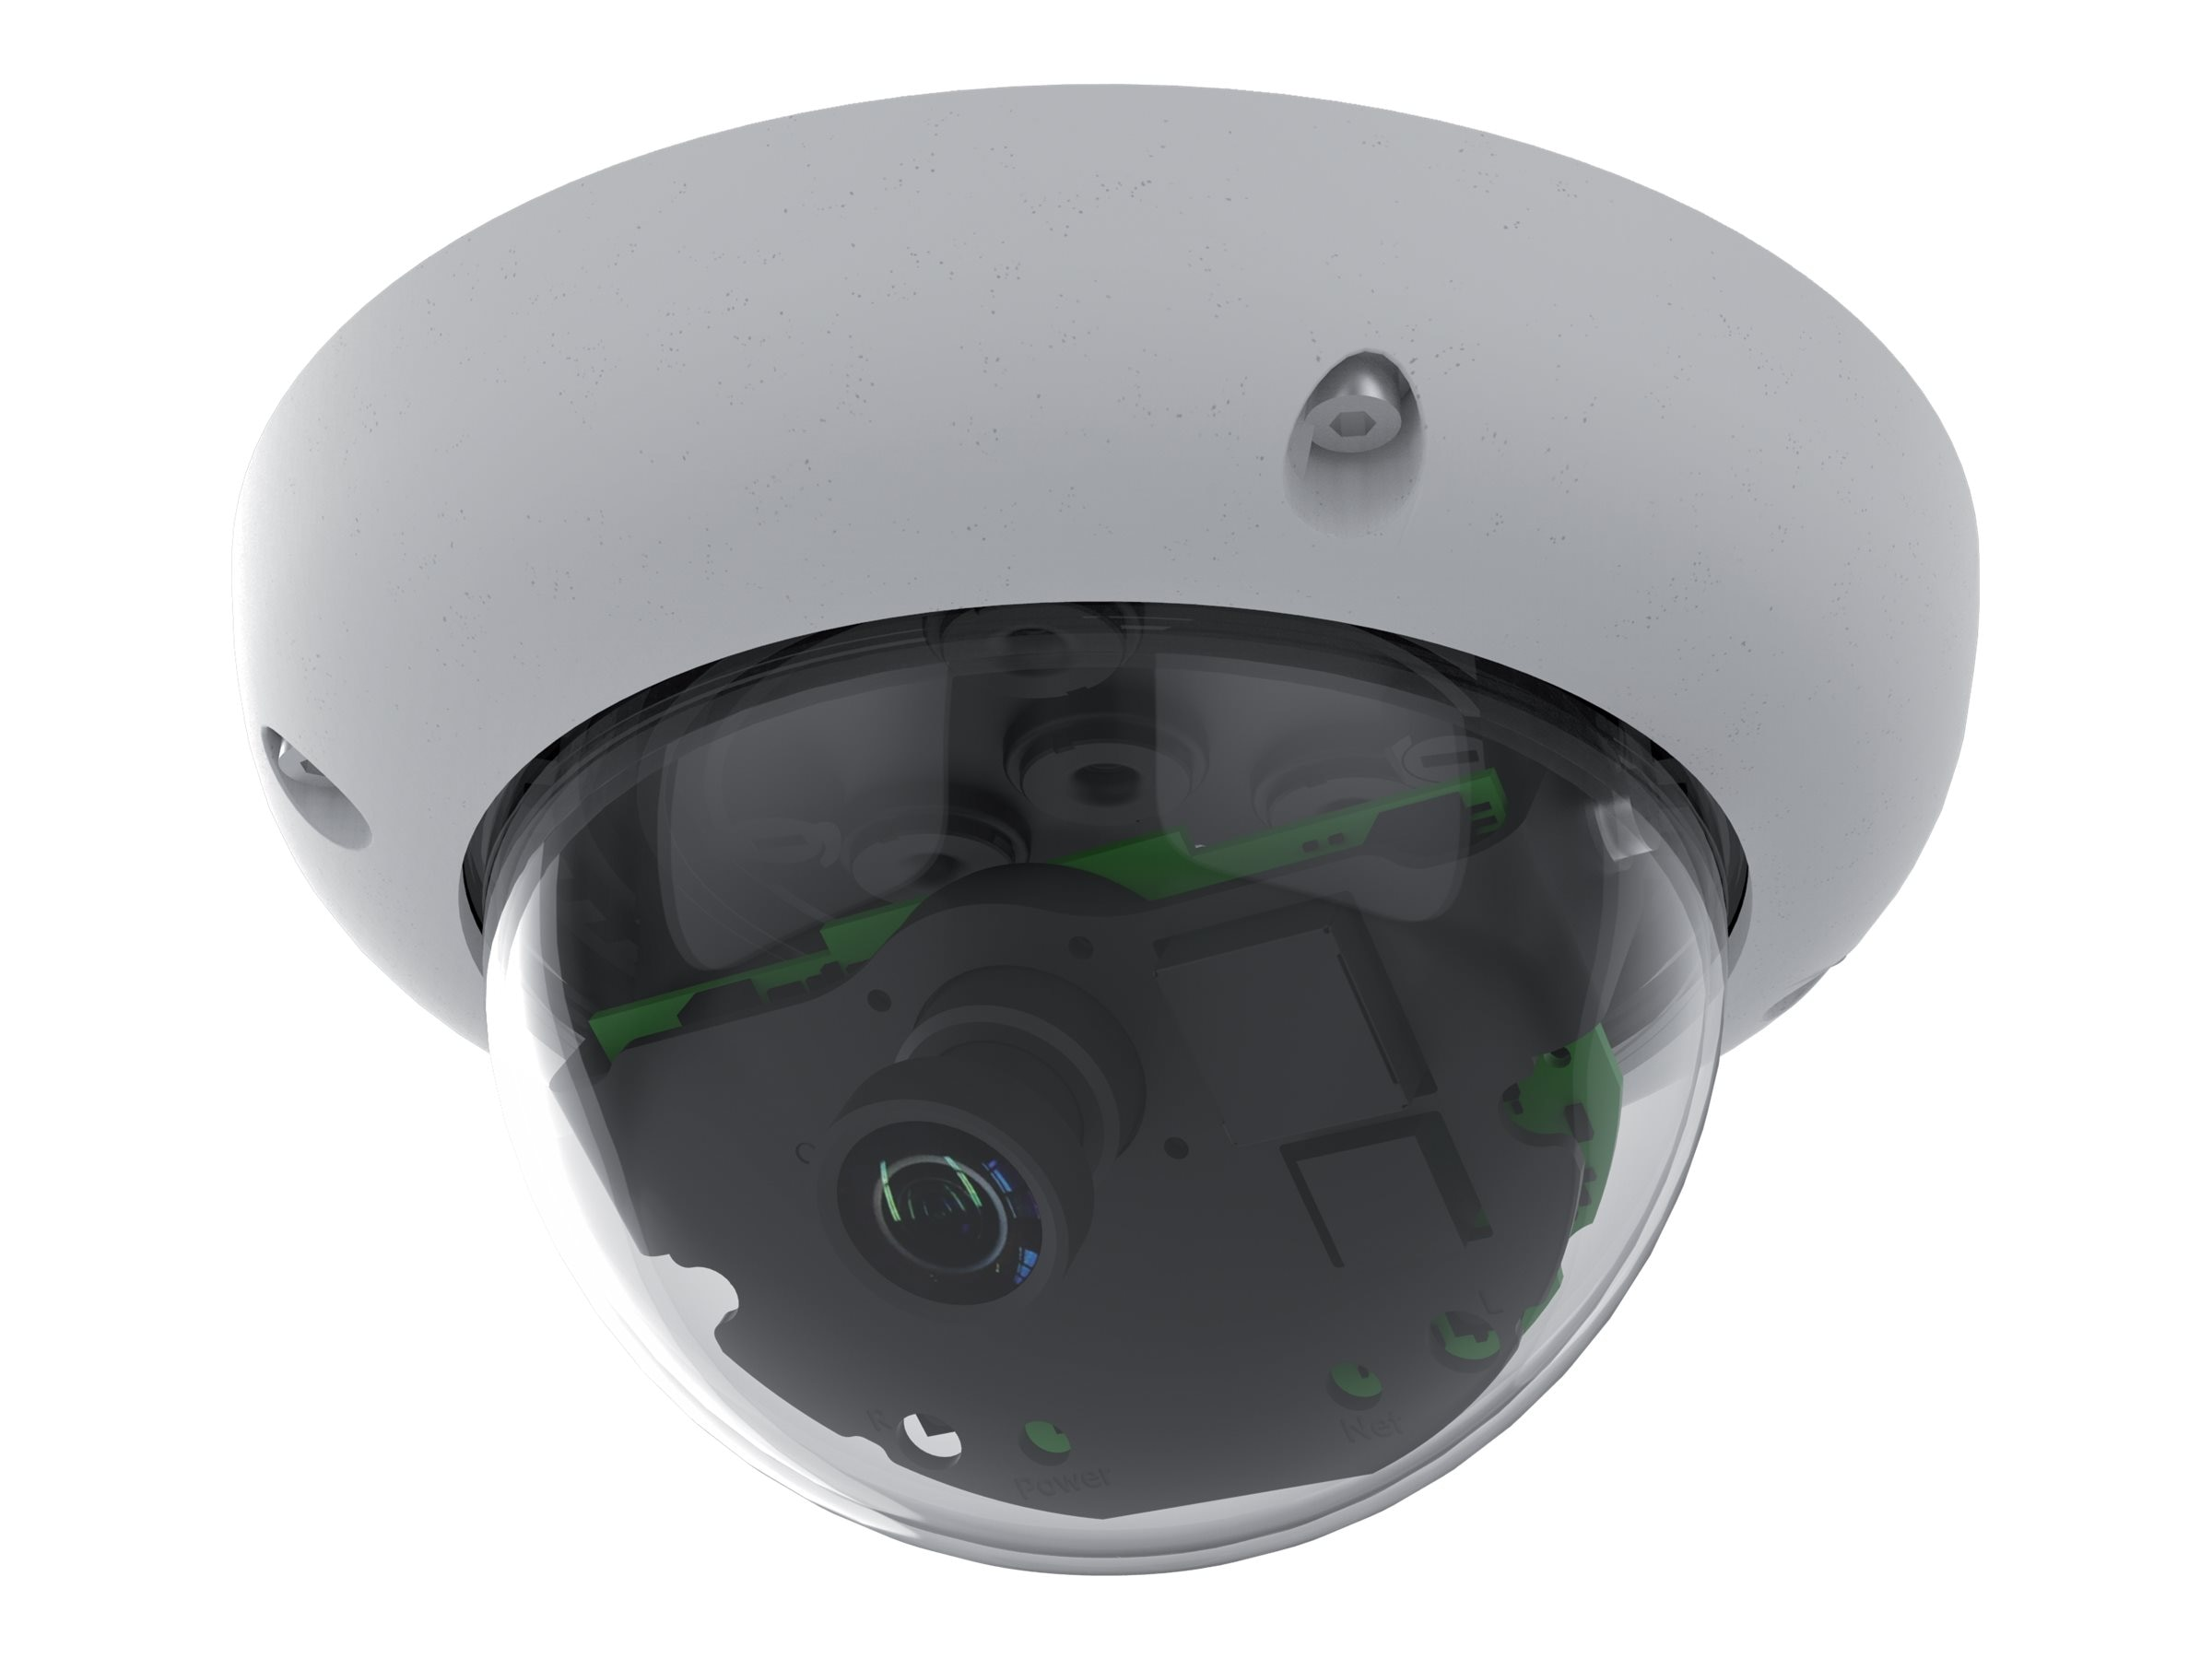 Mobotix 6MP Day Outdoor Network Dome Camera (No Lens)